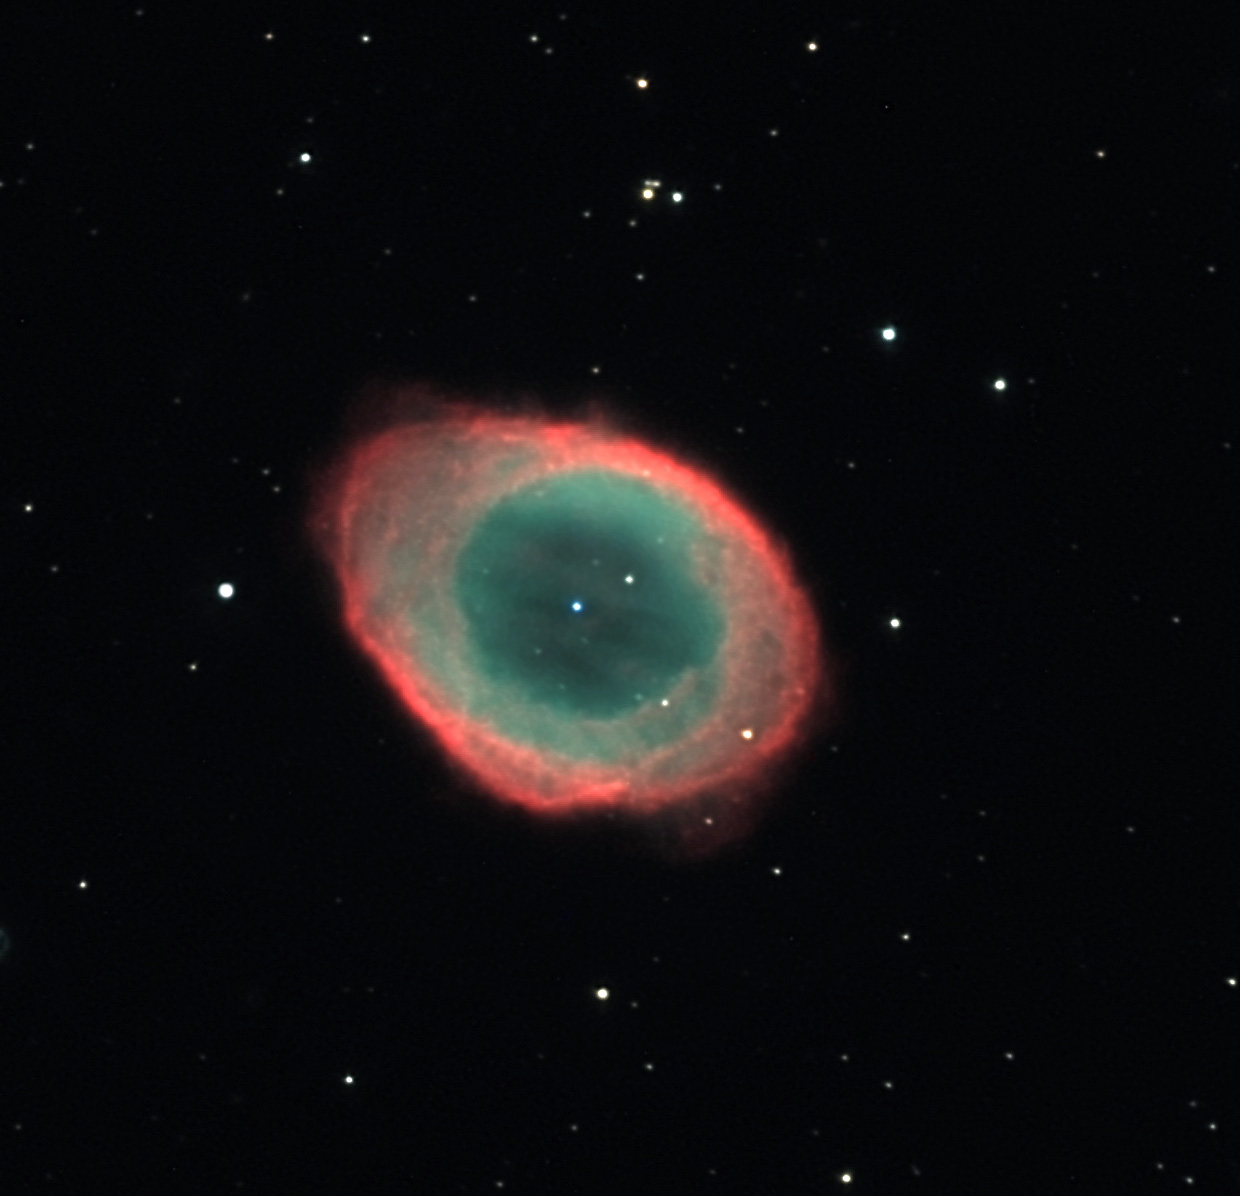 nasa ring nebula - photo #16